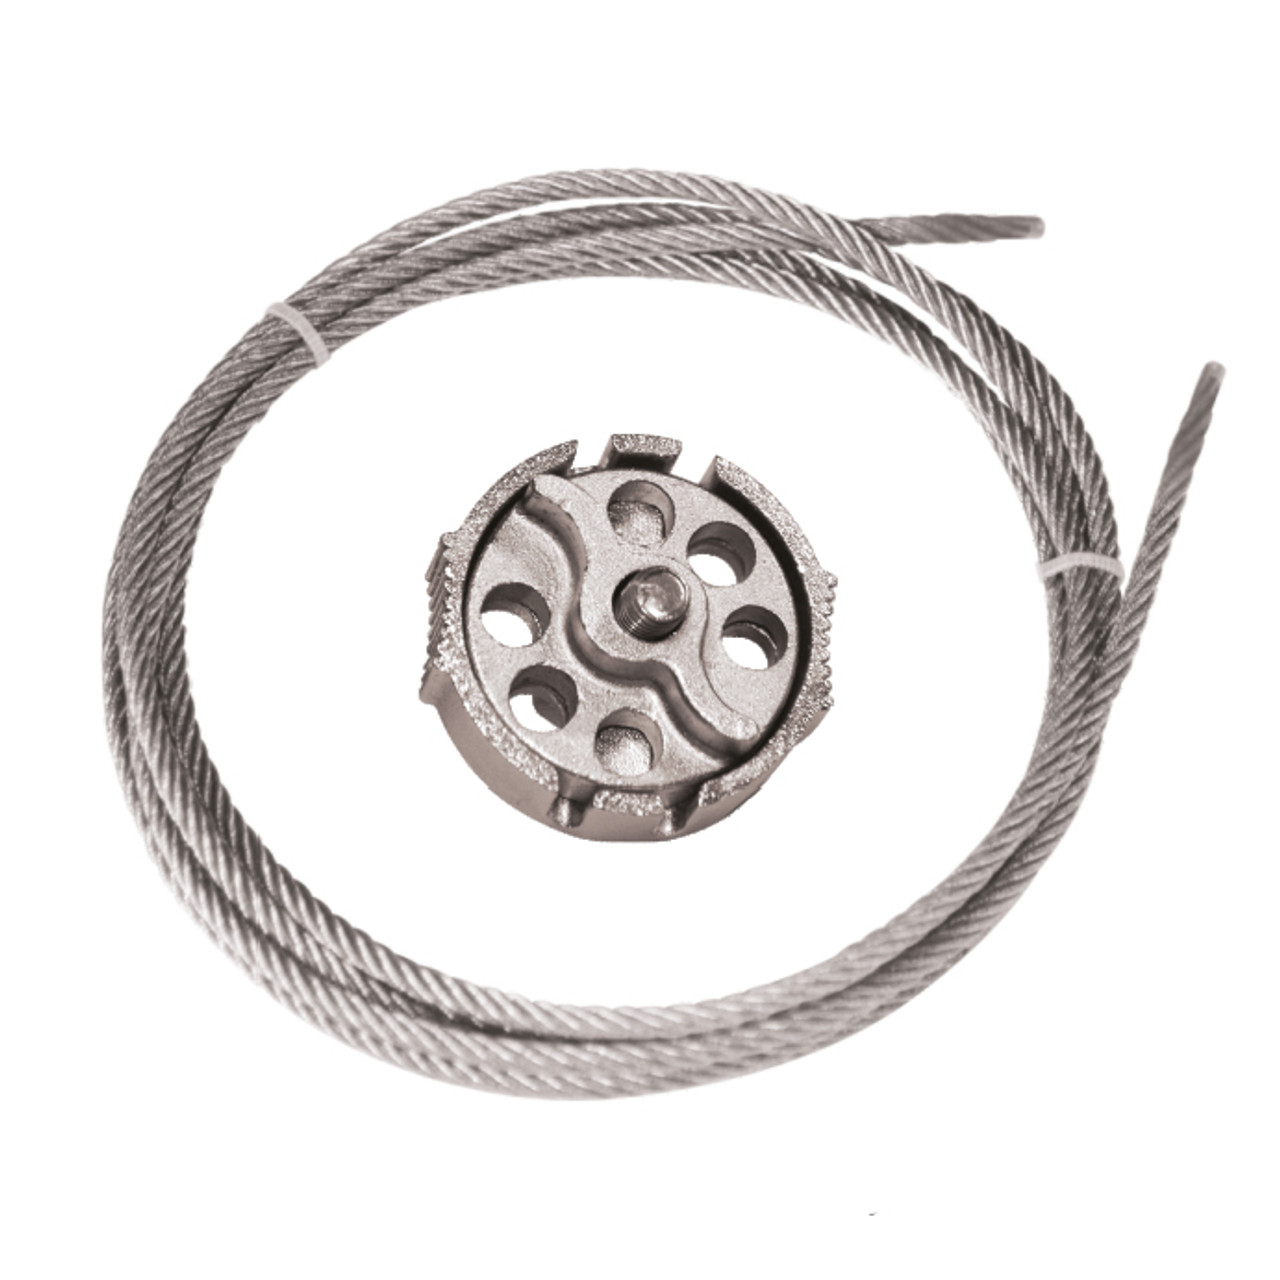 Cable Lockout, 6 ft Steel Cable